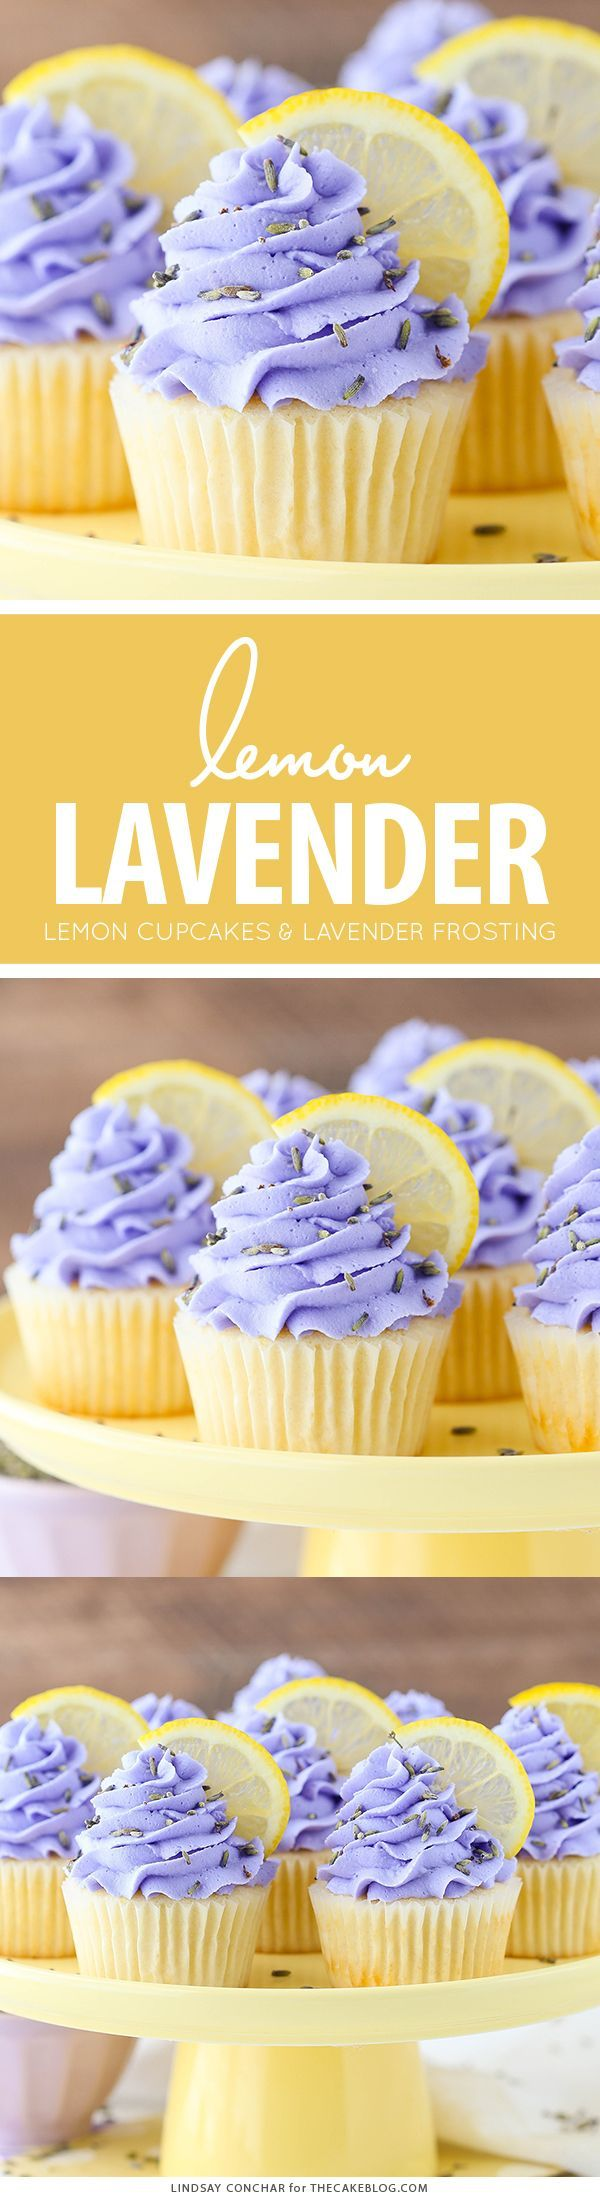 Lemon Lavender Cupcakes - easy lemon cupcakes with a light lavender frosting | by Lindsay Conchar for http://TheCakeBlog.com